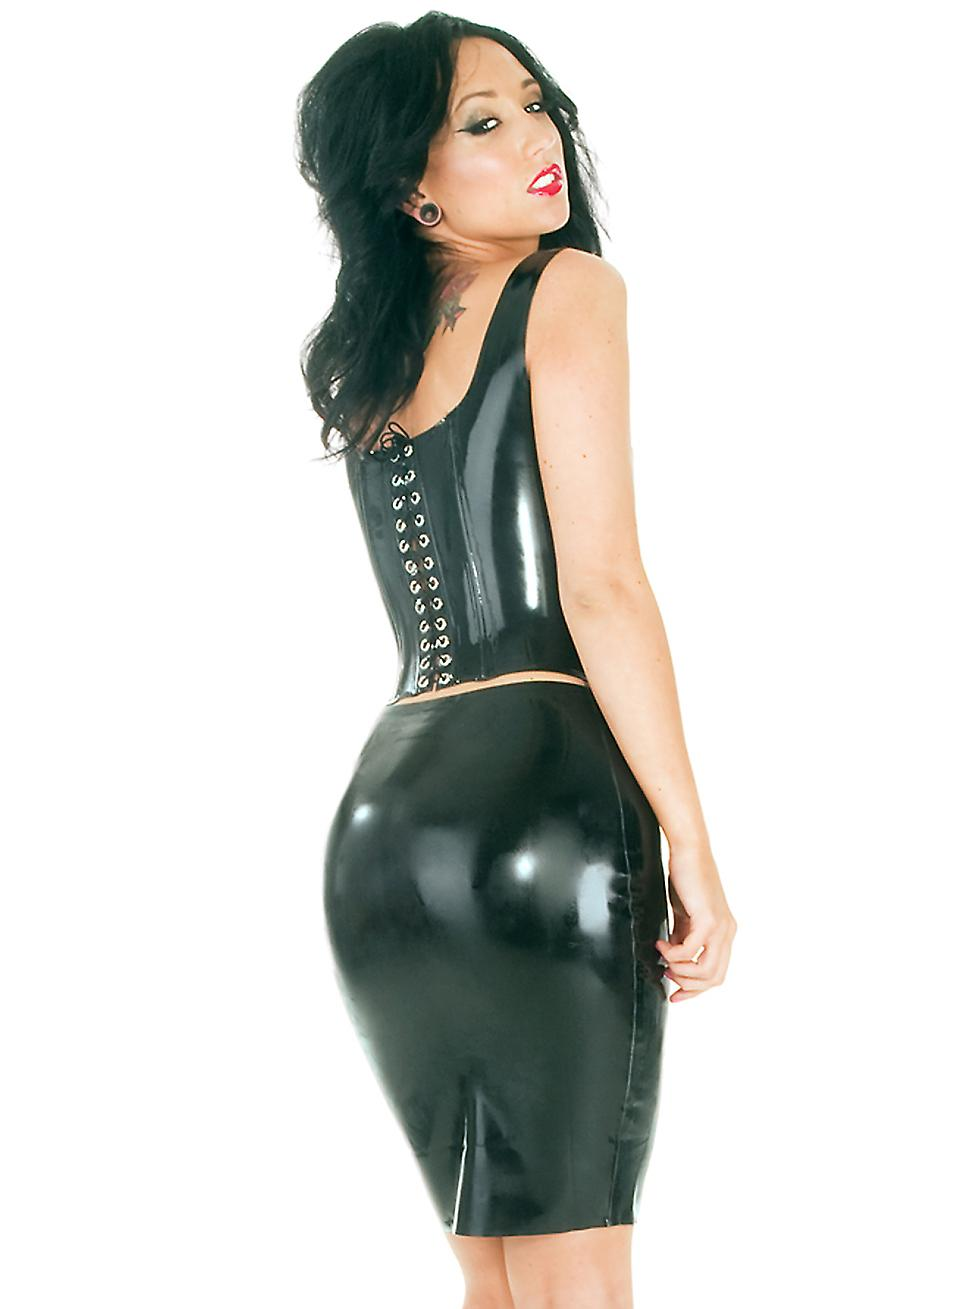 Honour Women's Sexy Corset Top in Black Rubber Tudor Style Push Up Front